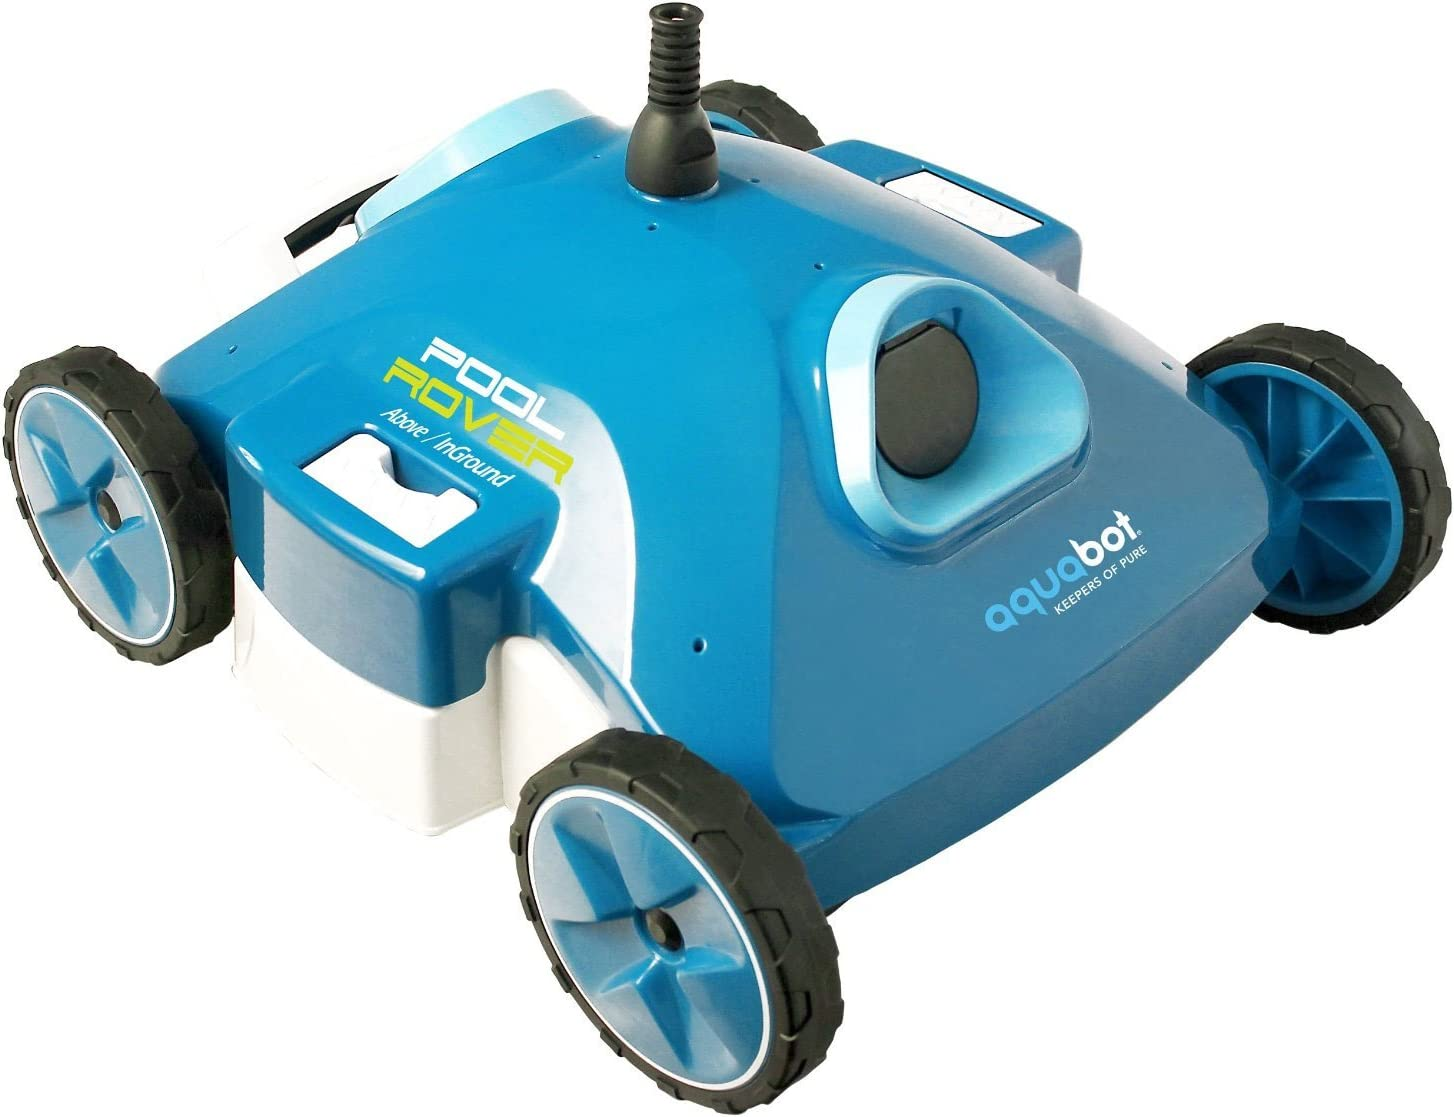 Aquabot Pool Rover (BLUE)